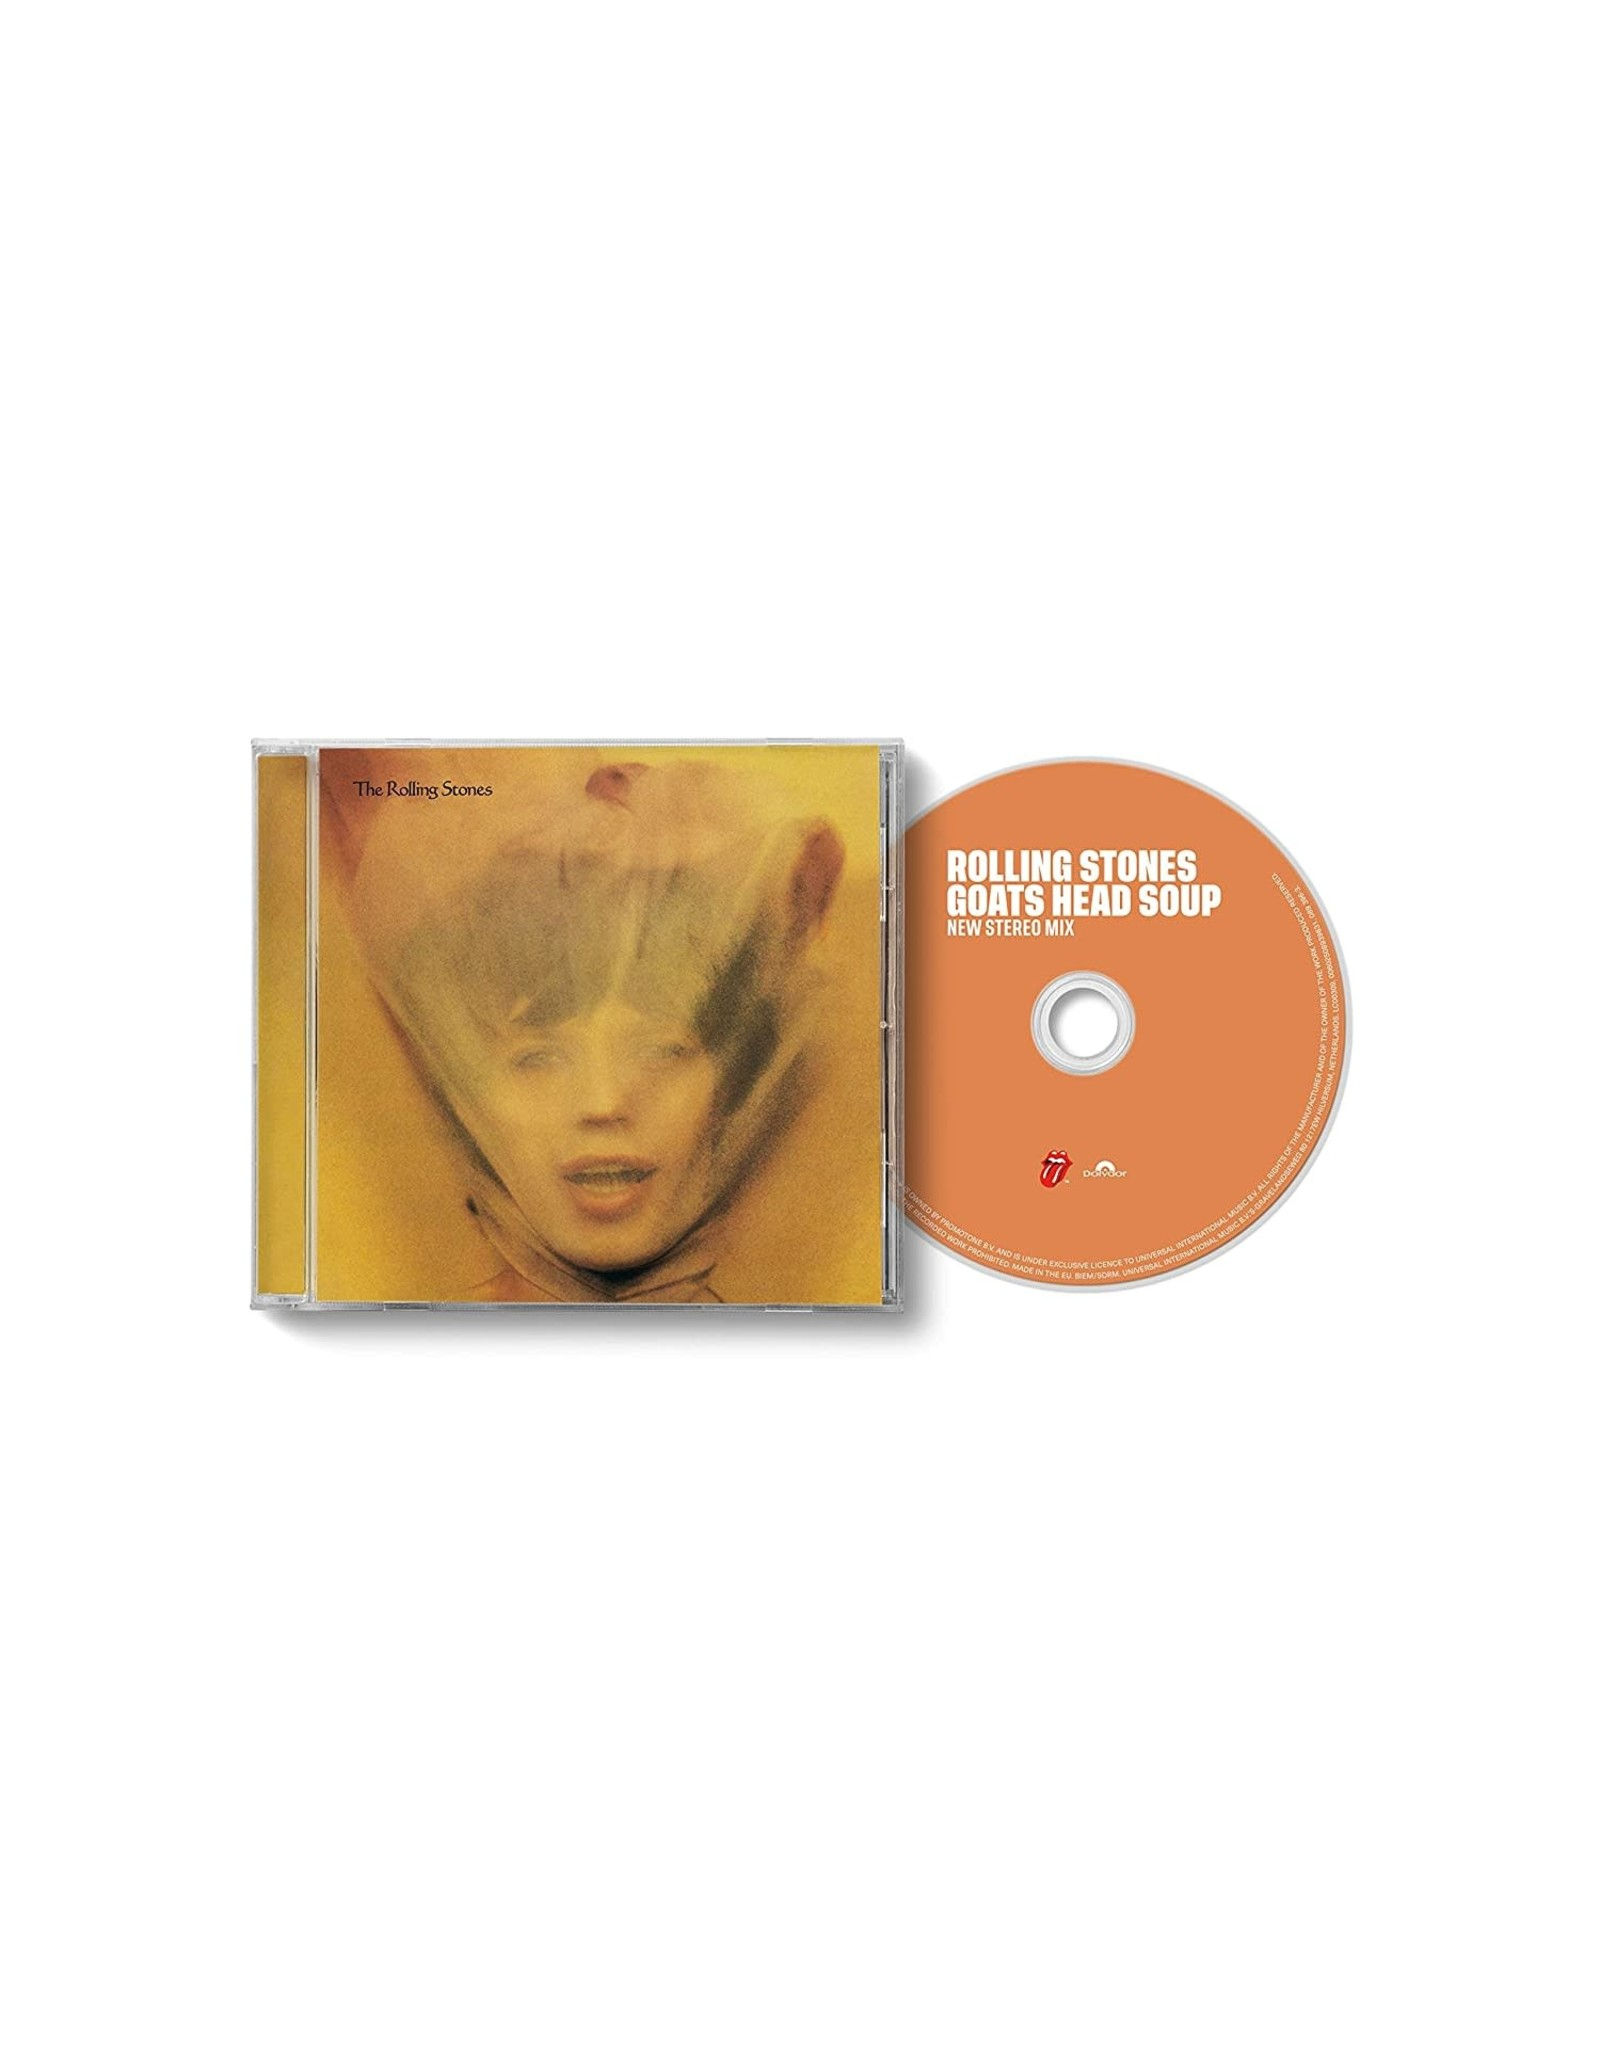 Rolling Stones - Goats Head Soup CD